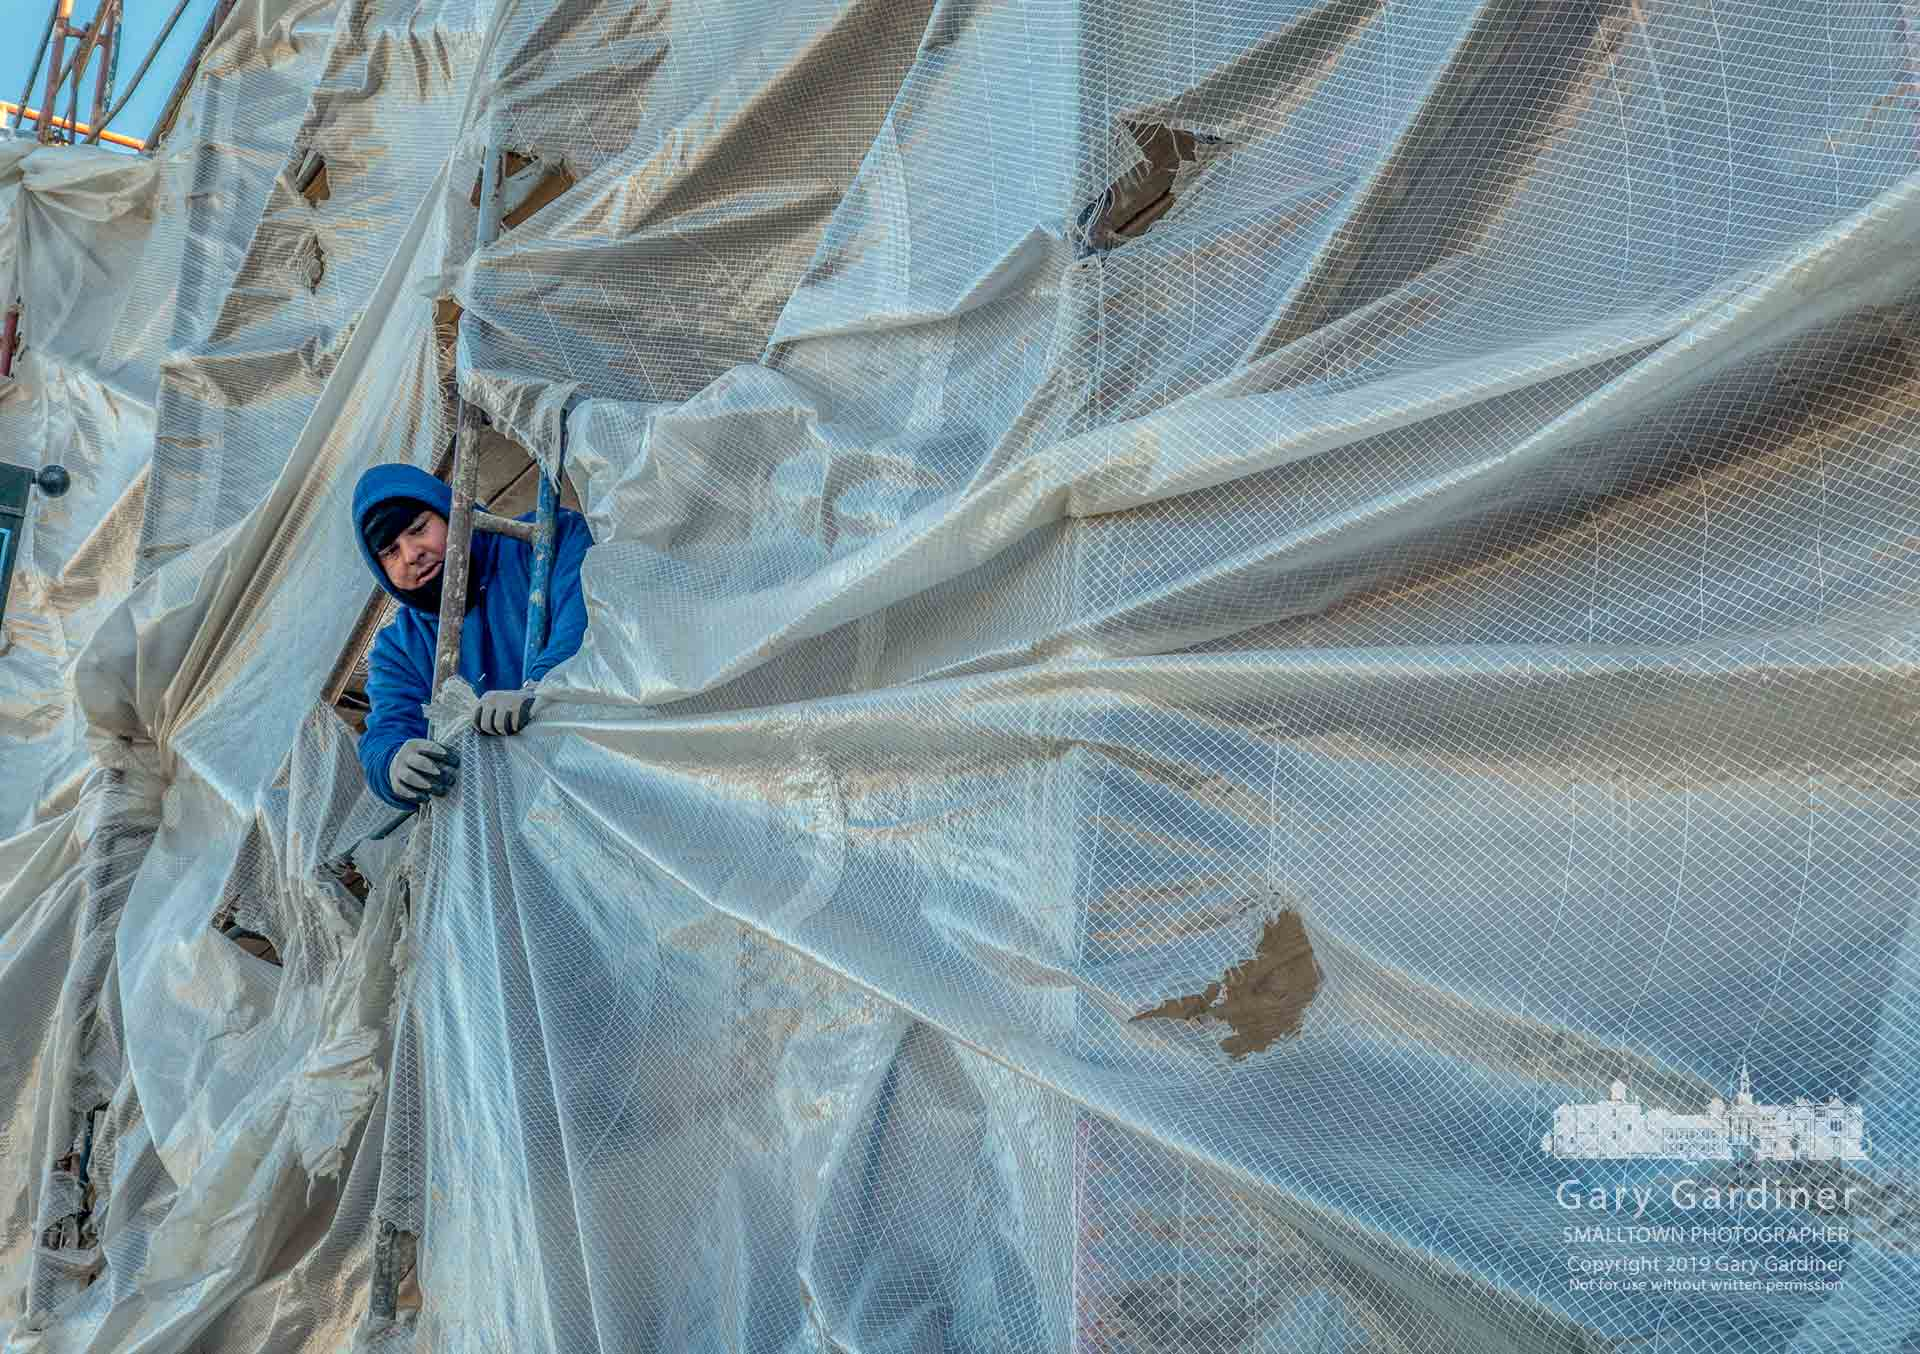 A construction worker temporarily reattaches plastic sheeting to the scaffolding used to as a platform to restore the brickwork and windows at a business on North State Street in Uptown Westerville. My Final Photo for Feb. 25, 2019.